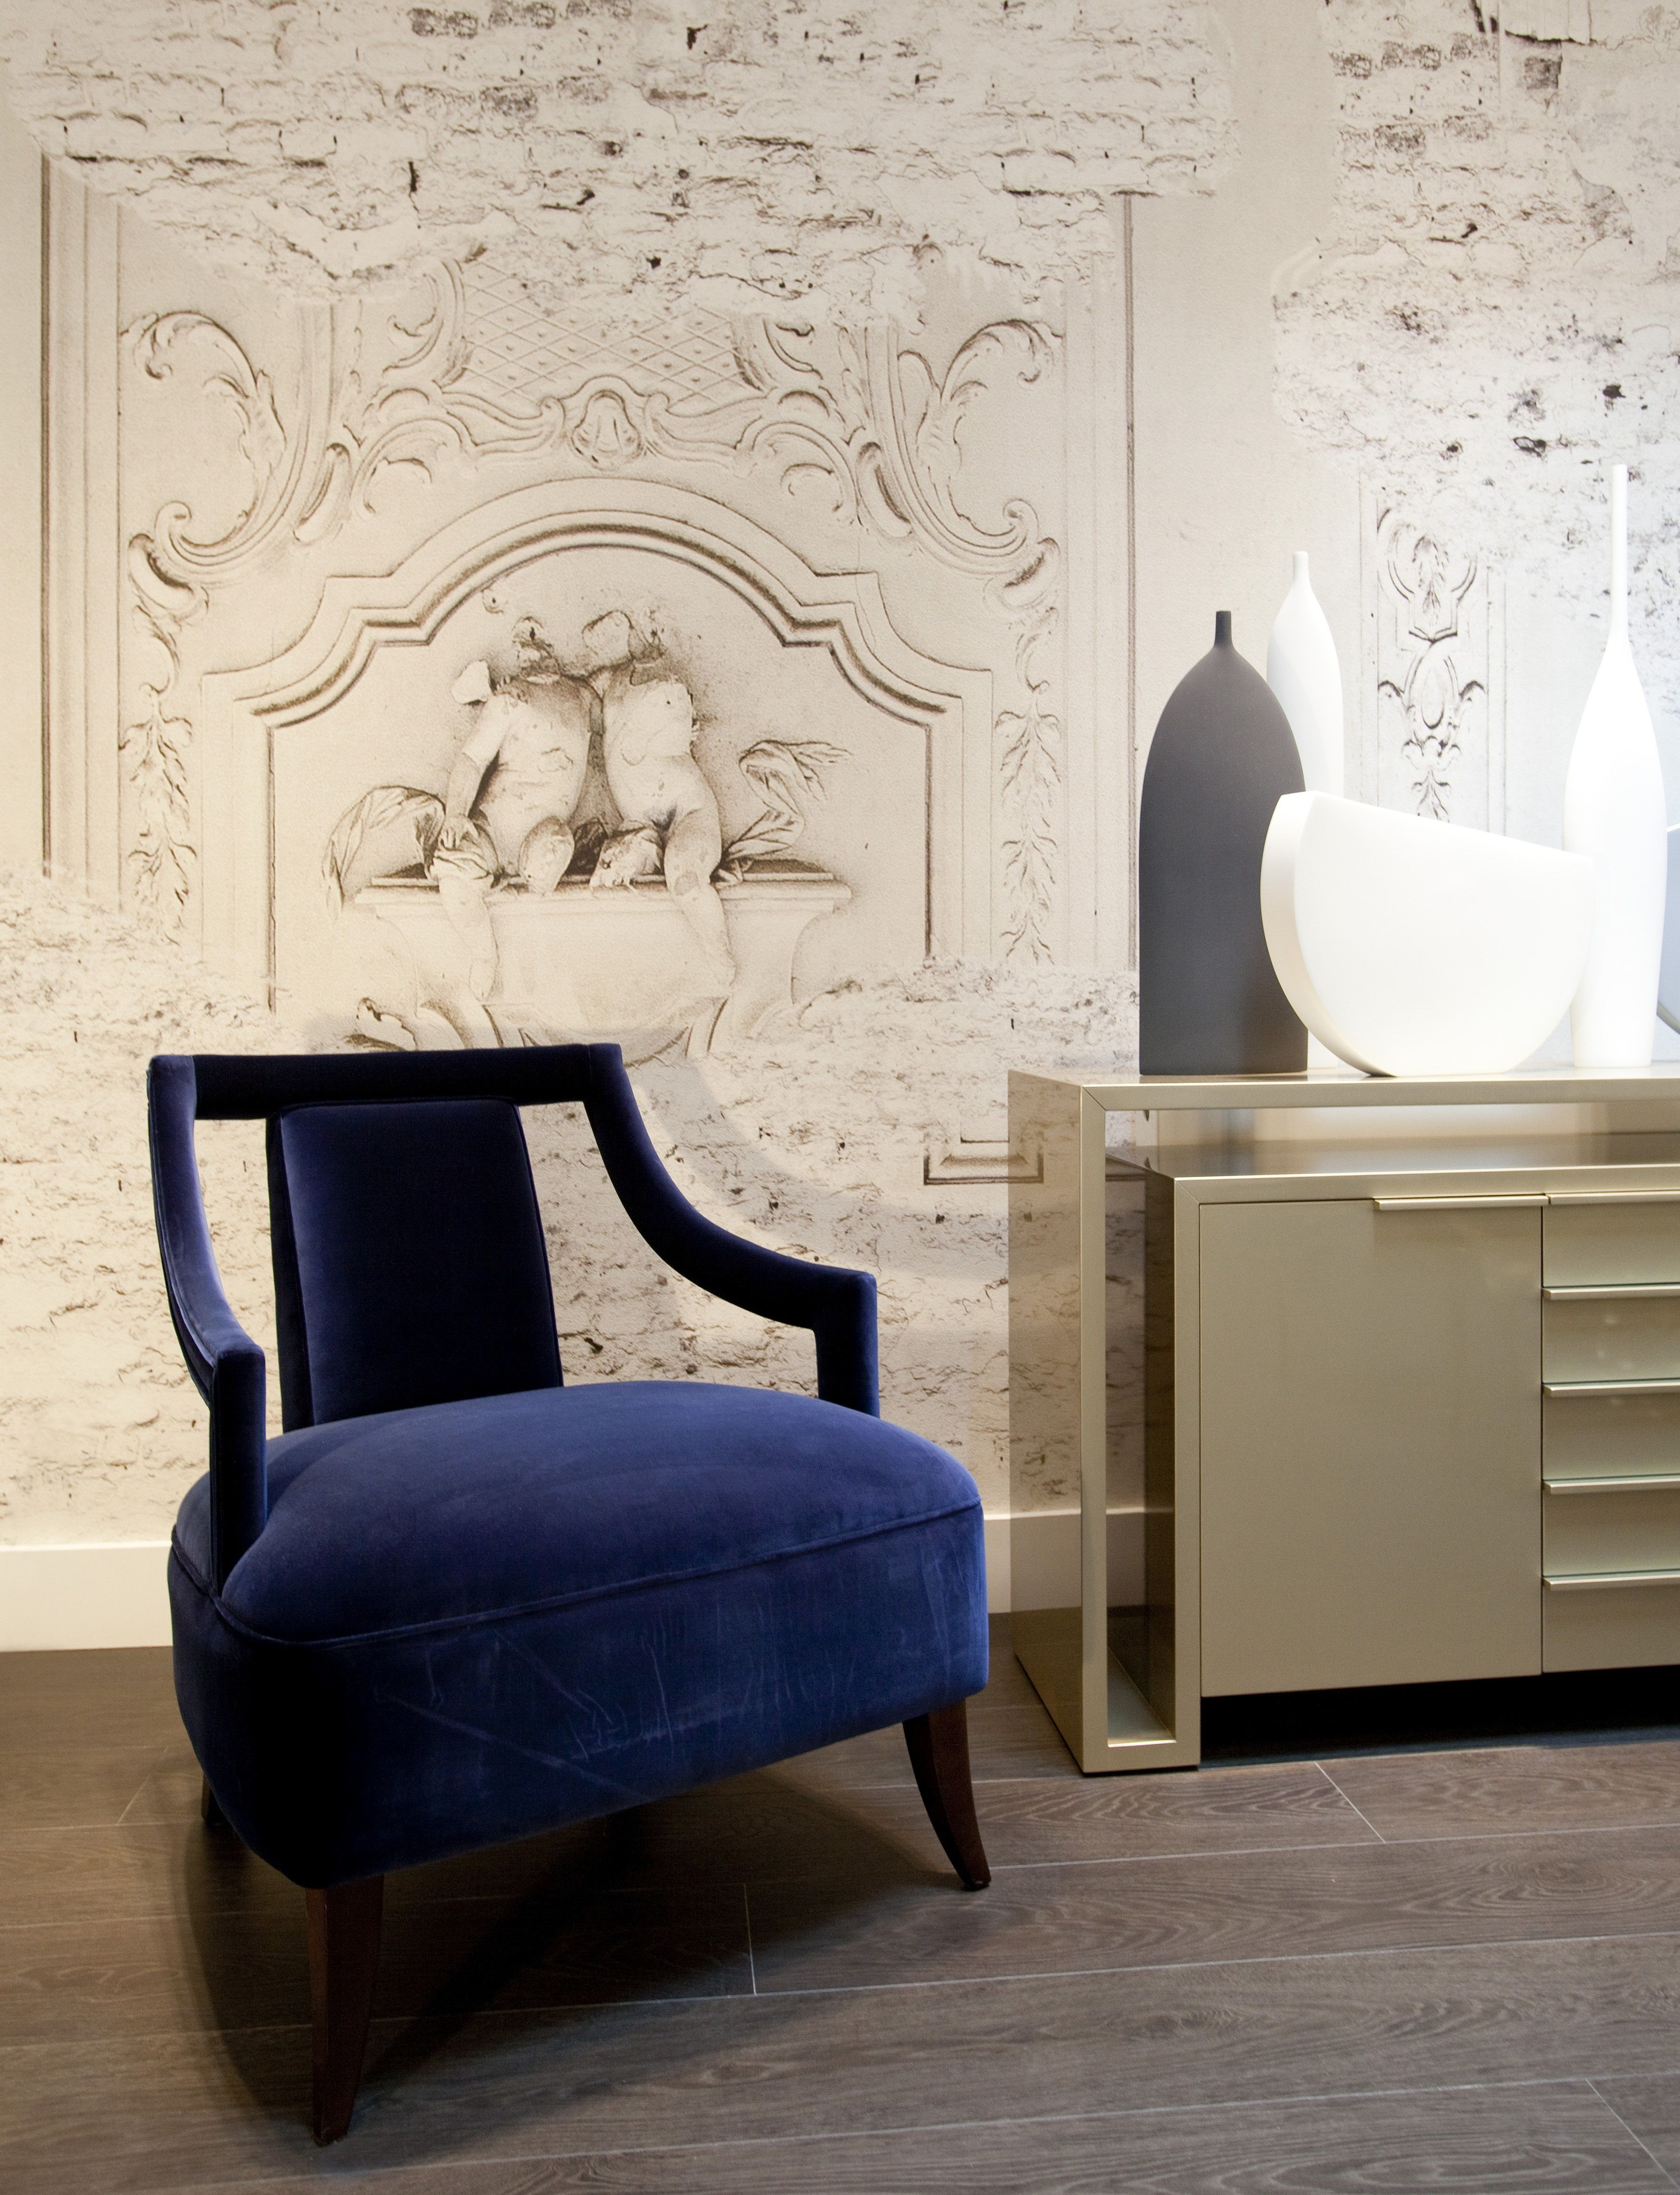 Beautiful blue velvet chair against stunning trompe d oiel Wall&Deco